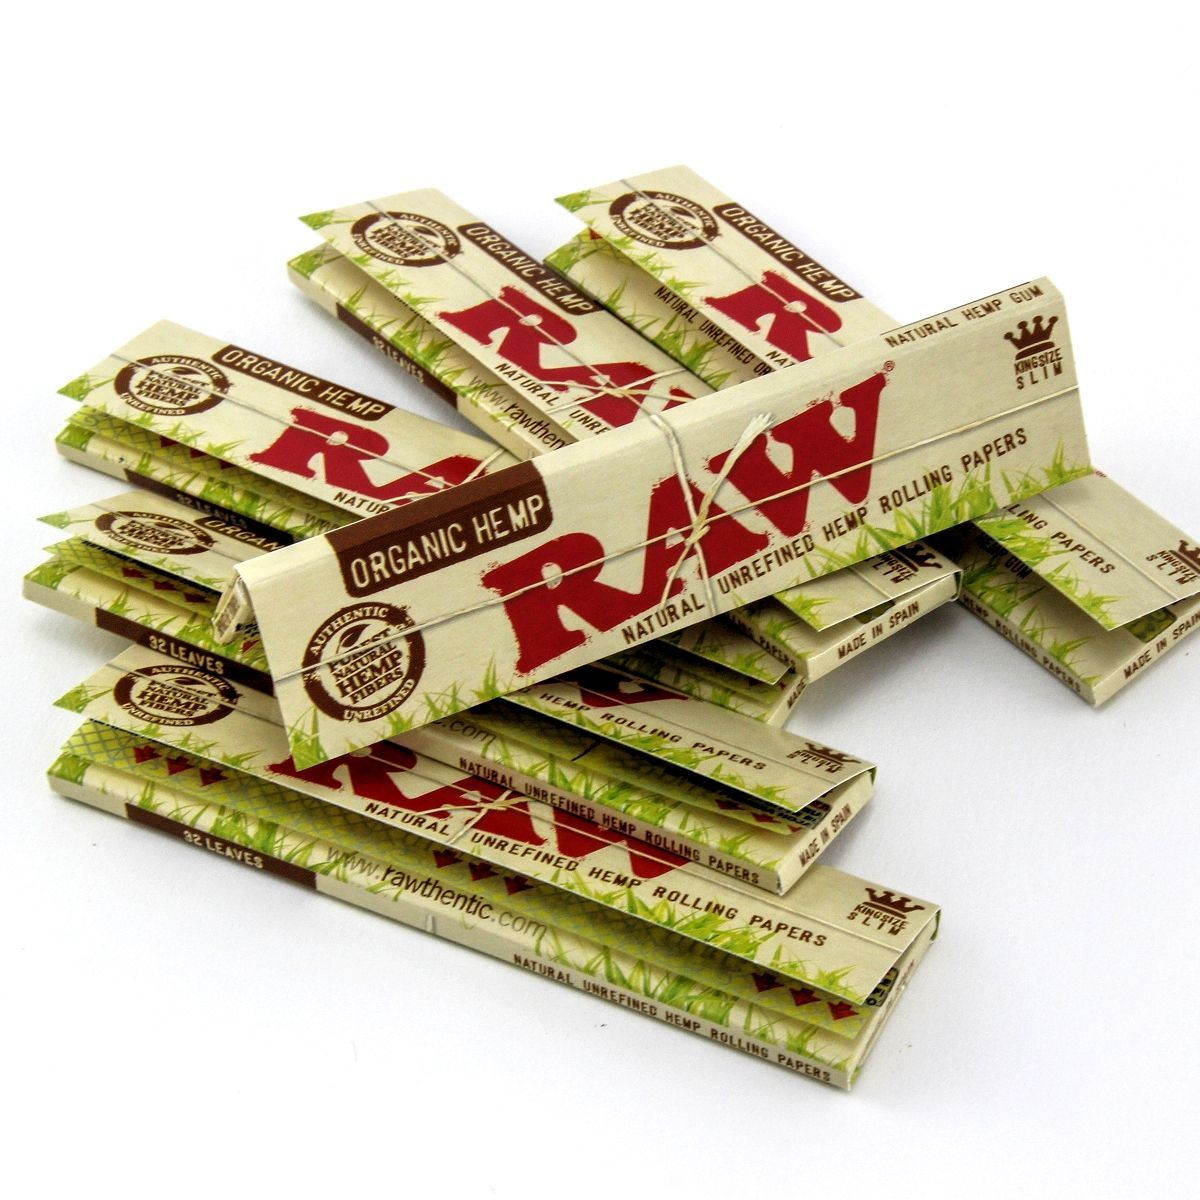 Raw Natural King Size Slim Organic Hemp Rolling Papers 50